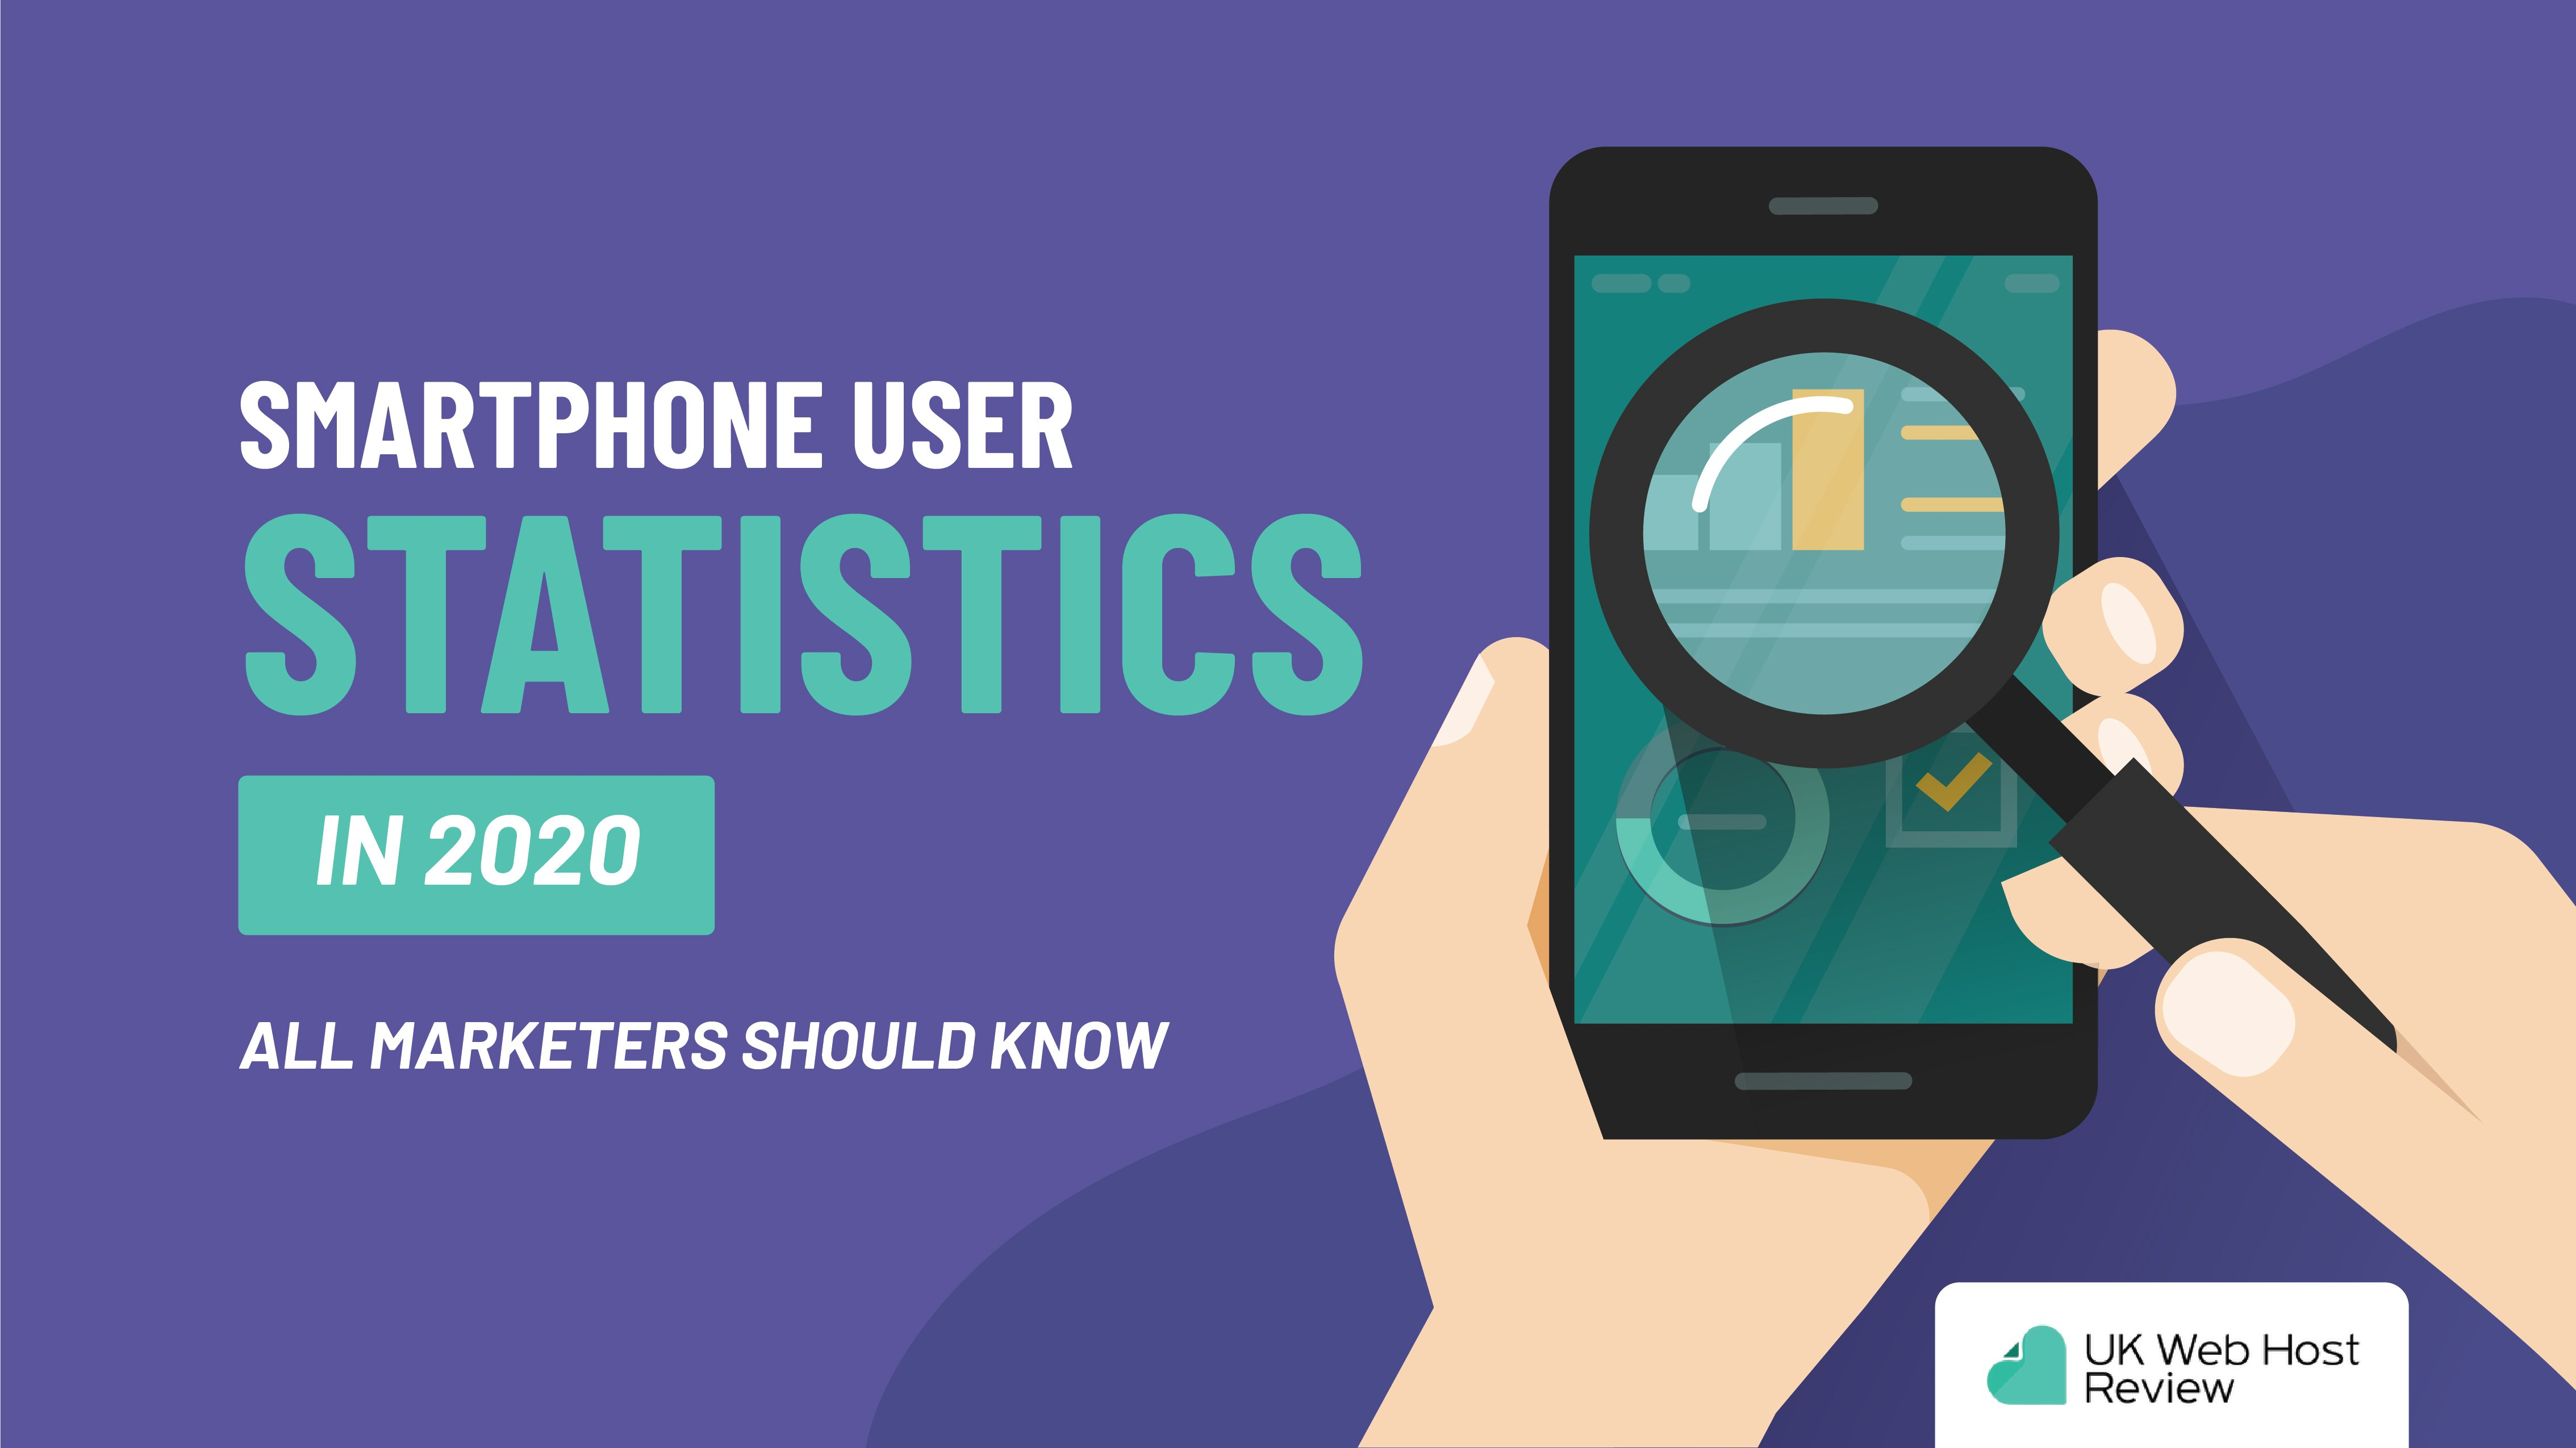 Smartphone User Statistics in 2020 [INFOGRAPHIC]